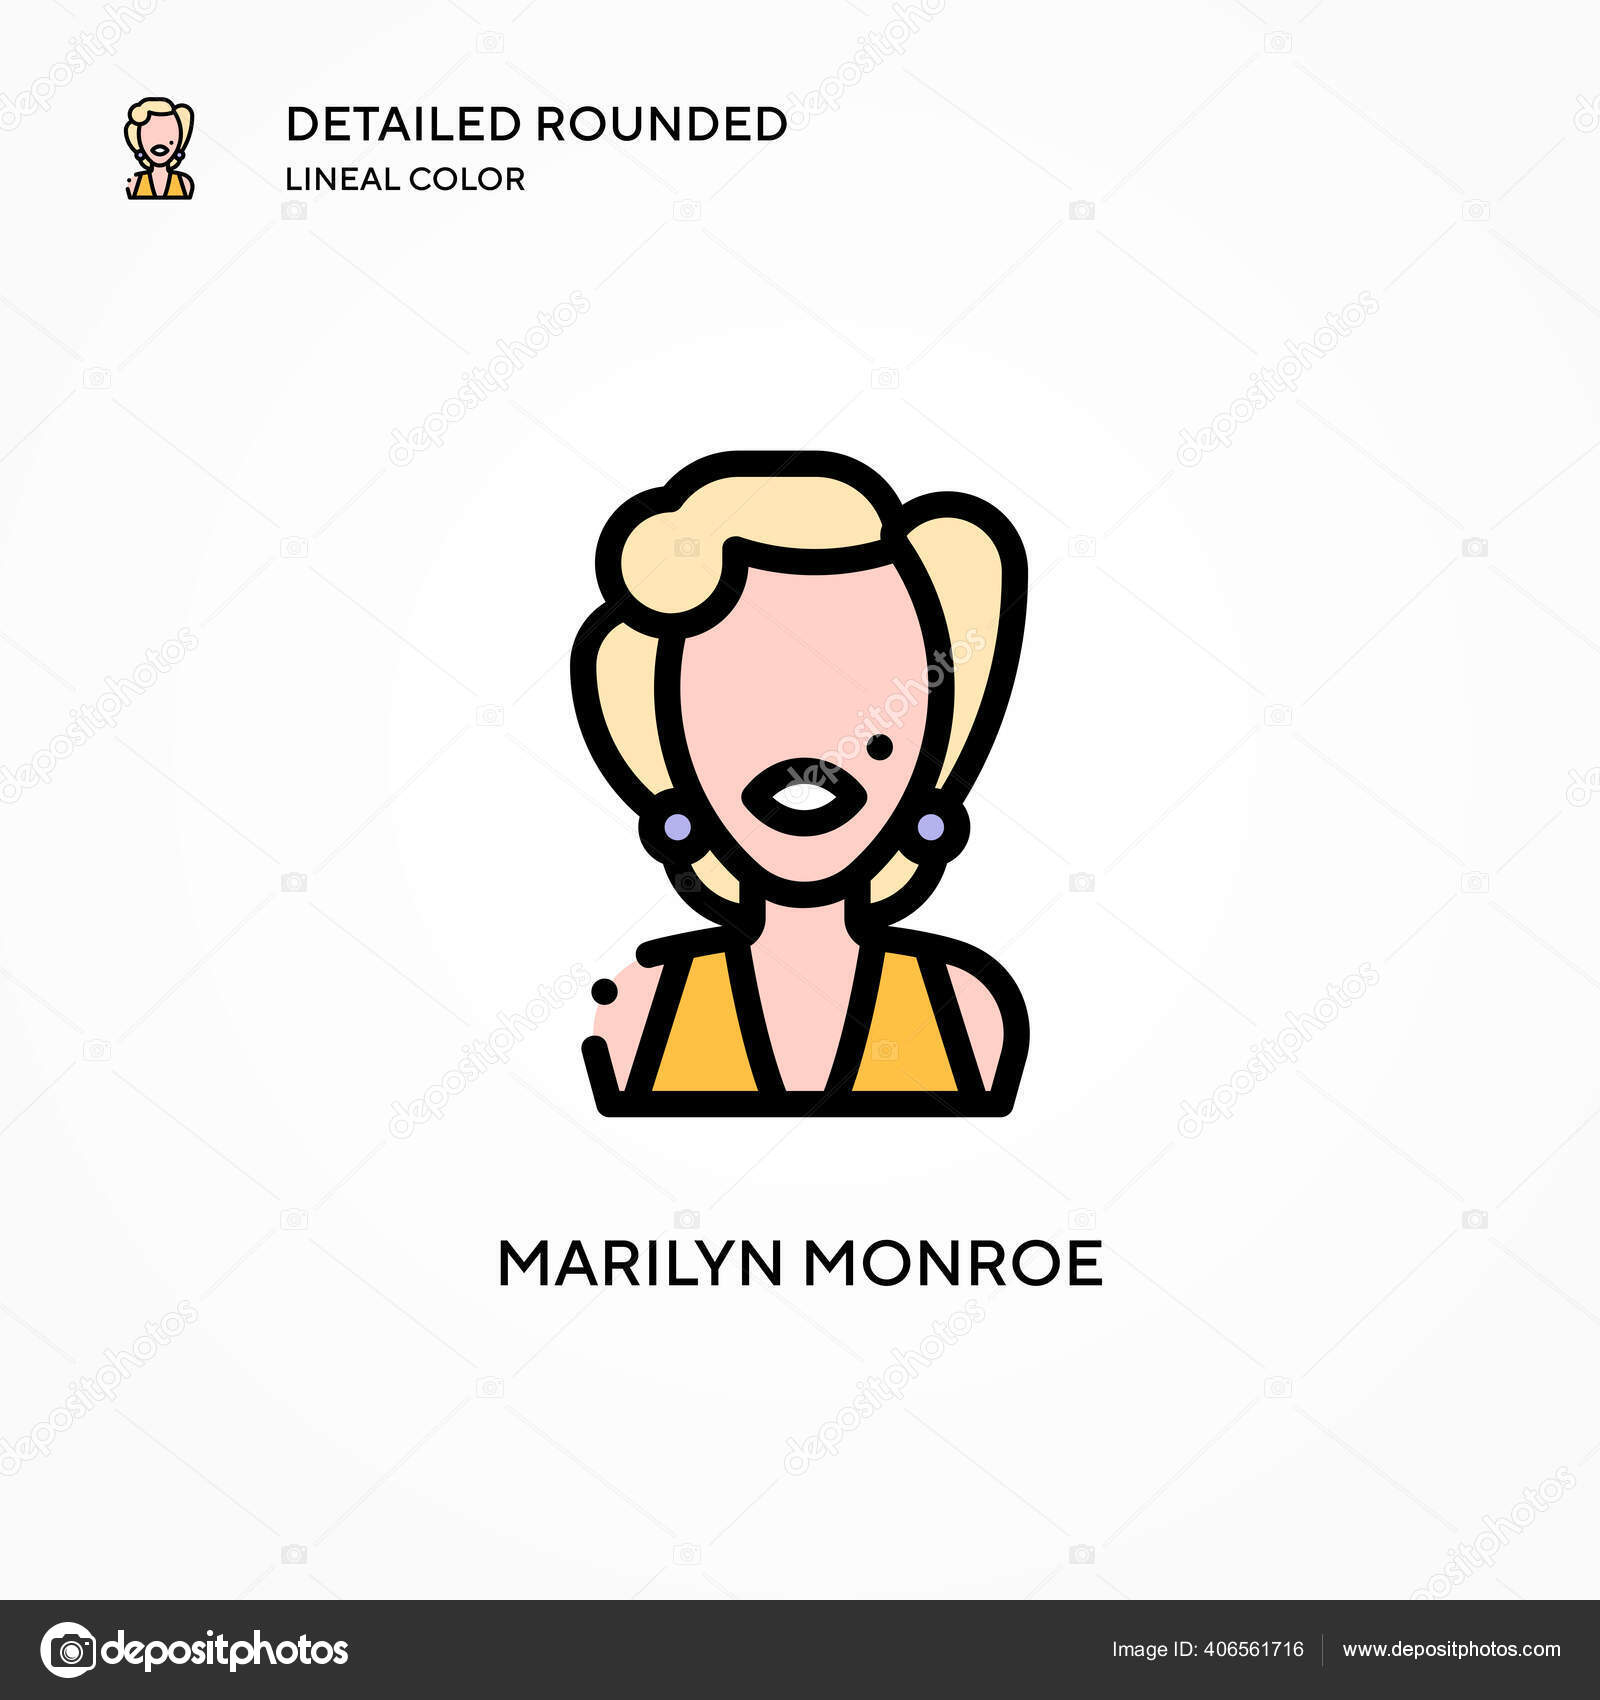 marilyn monroe vector stock vectors royalty free marilyn monroe vector illustrations depositphotos https depositphotos com 406561716 stock illustration marilyn monroe vector icon modern html